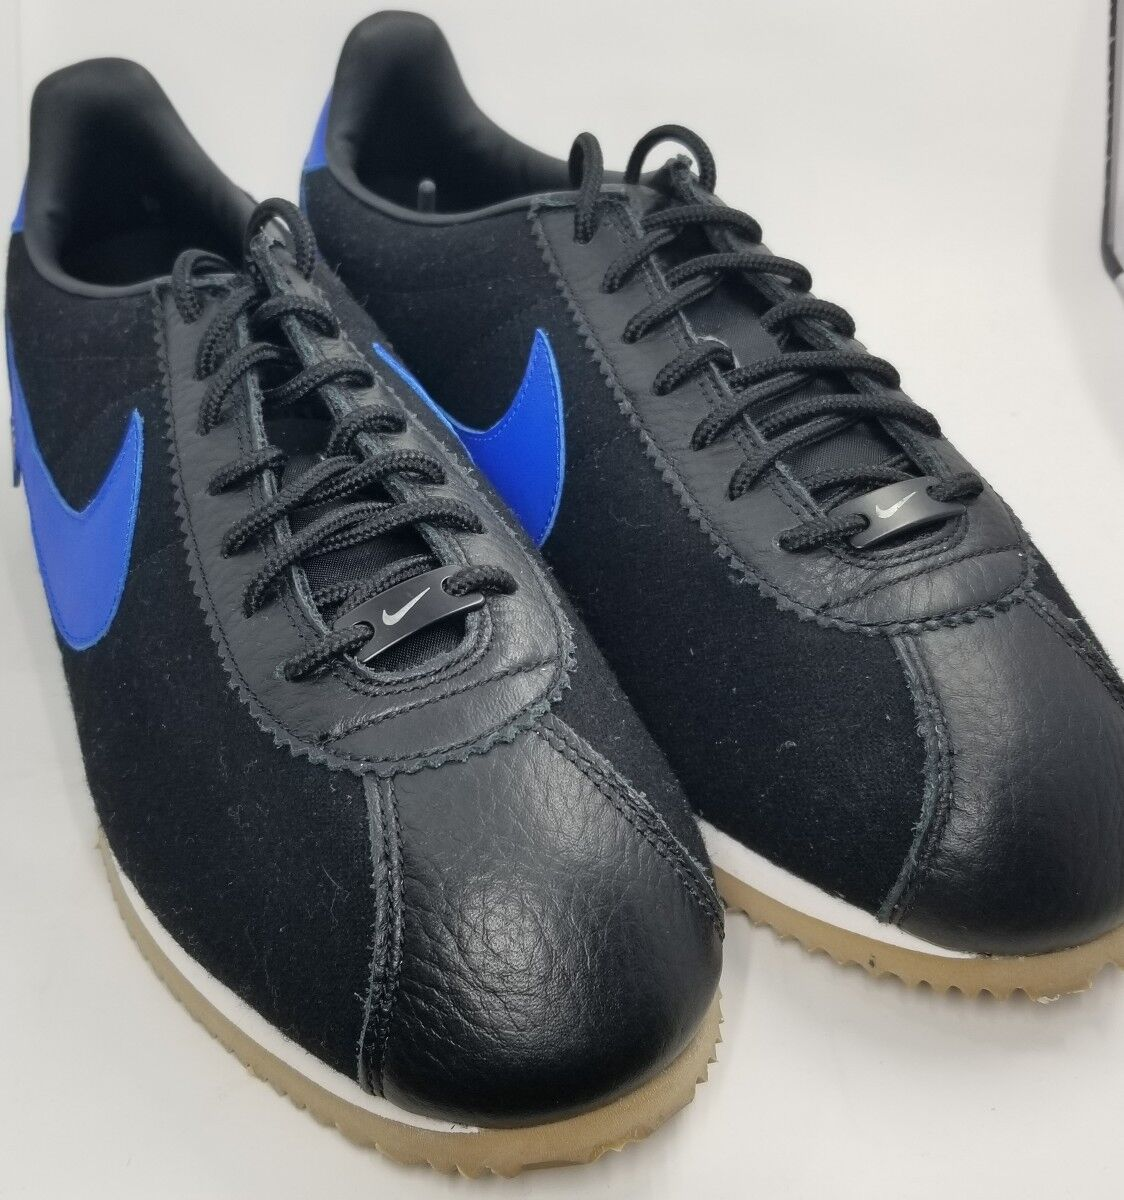 NIKE CLASSIC CORTEZ ID PENDLETON MENS SIZE 10.5 AO4693-991 The most popular shoes for men and women